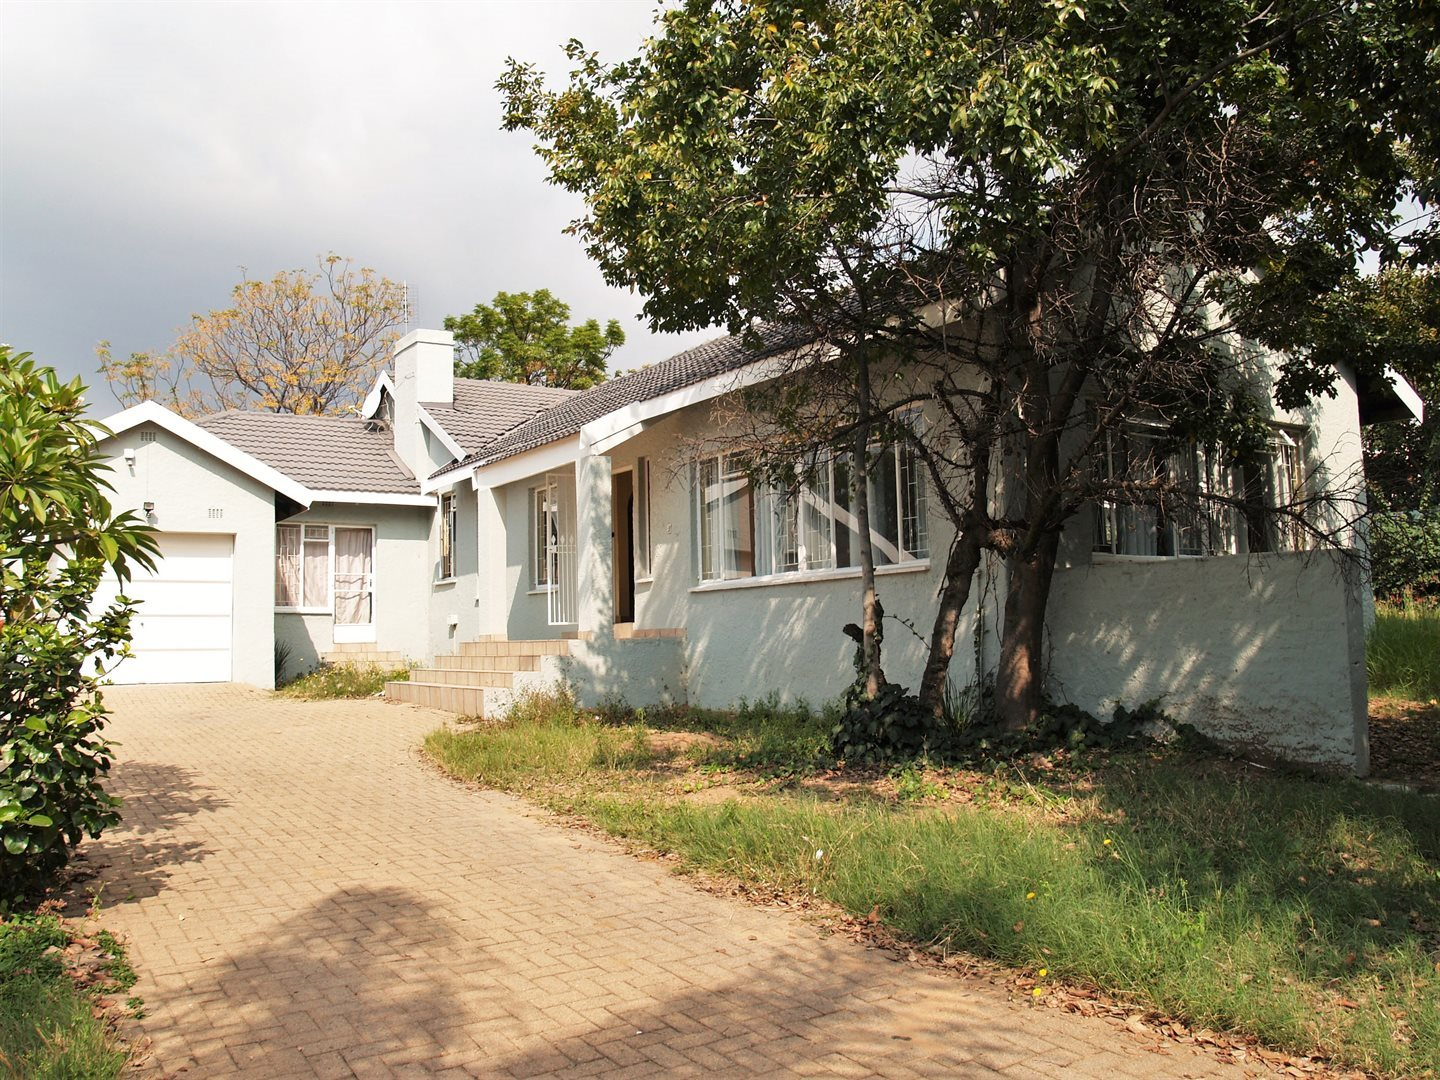 Property and Houses for sale in Johannesburg North, House, 4 Bedrooms - ZAR 1,575,000